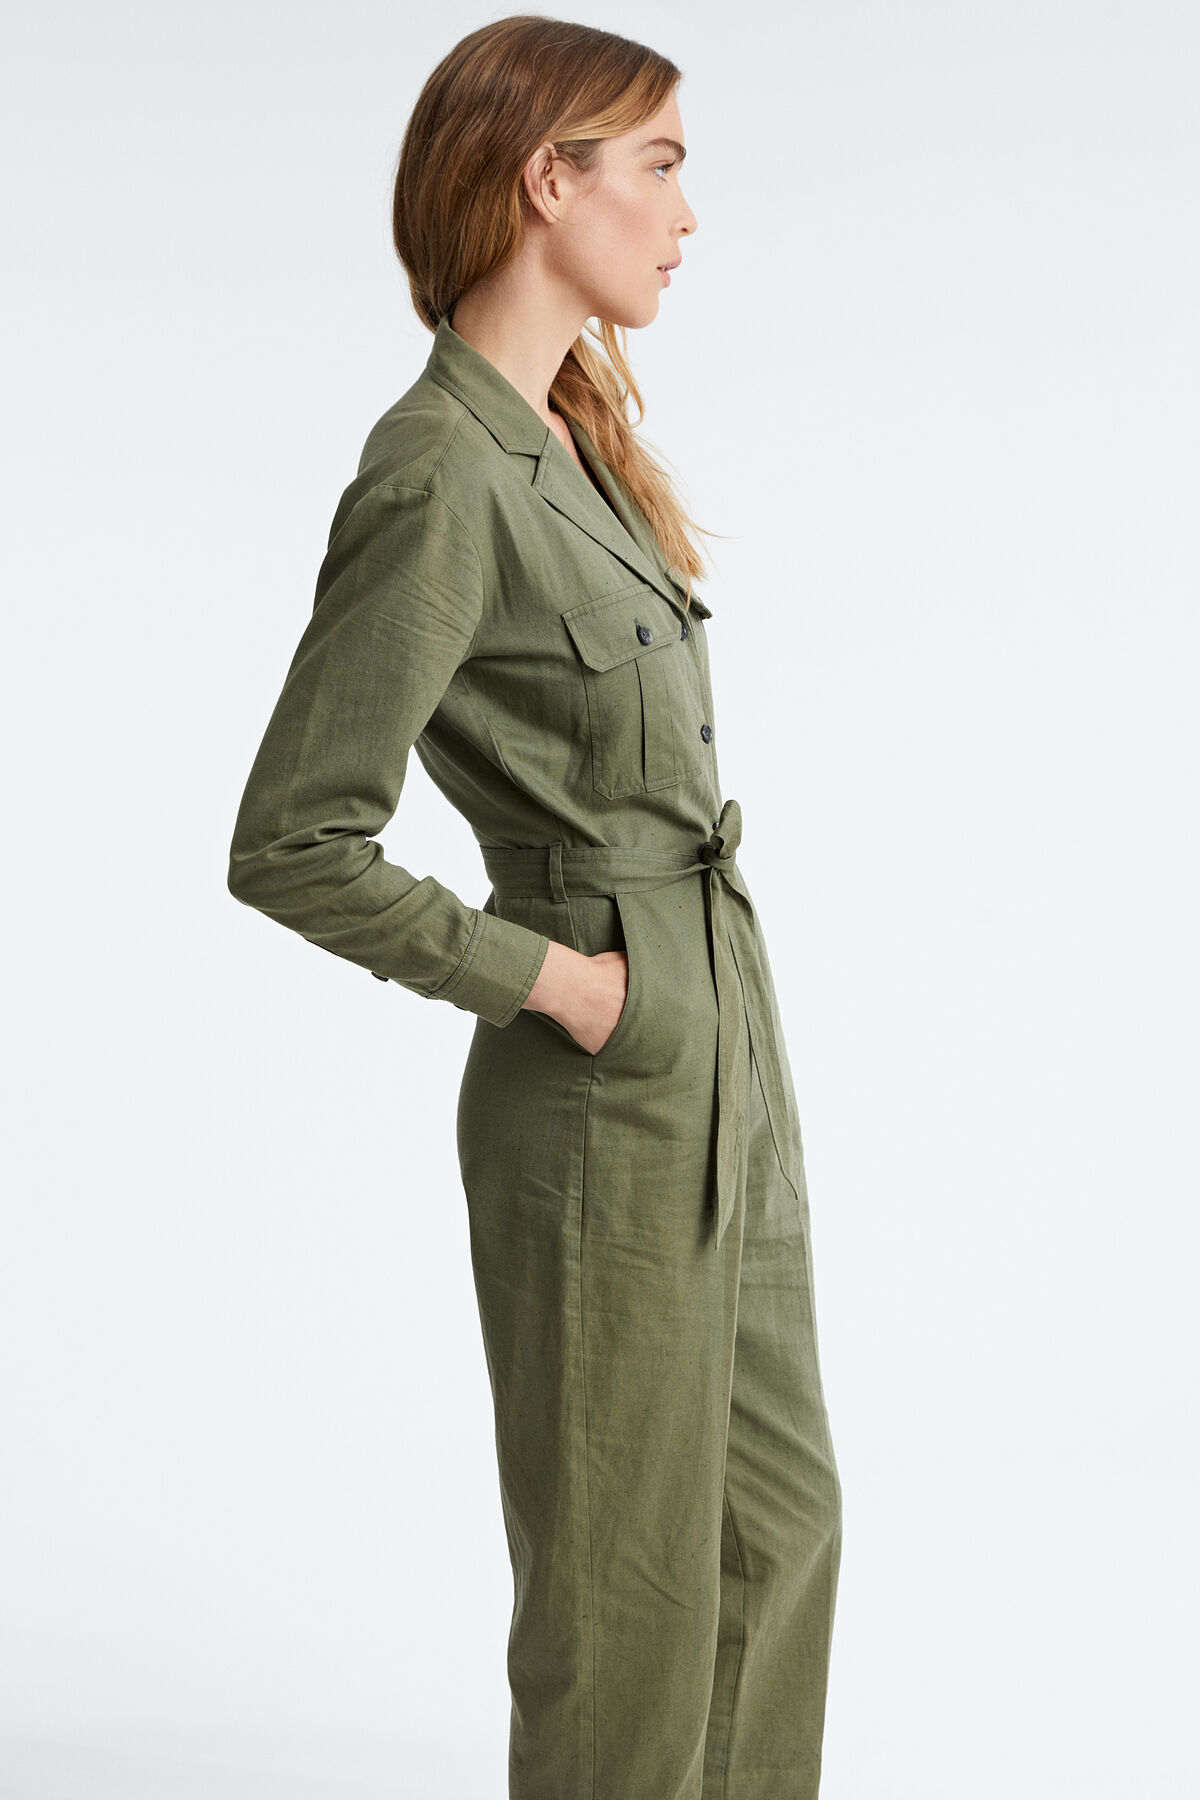 GALLOWAY JUMPSUIT Linen & cotton canvas blend - Relaxed Fit